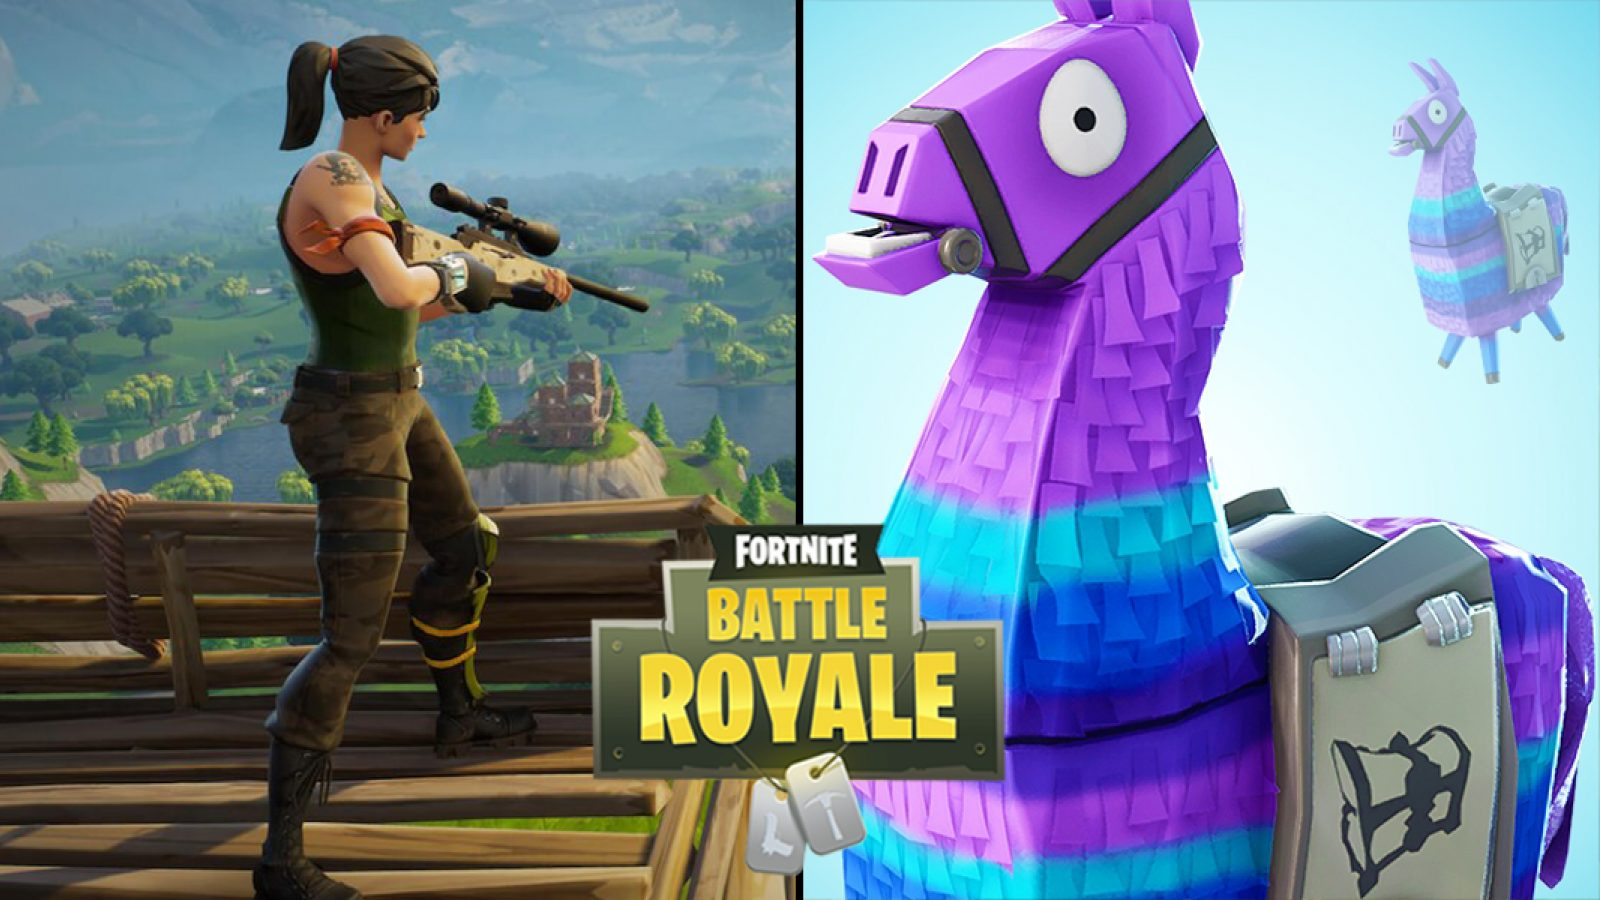 Fortnite – Players Can Easily Customize Their Playground LTM Now